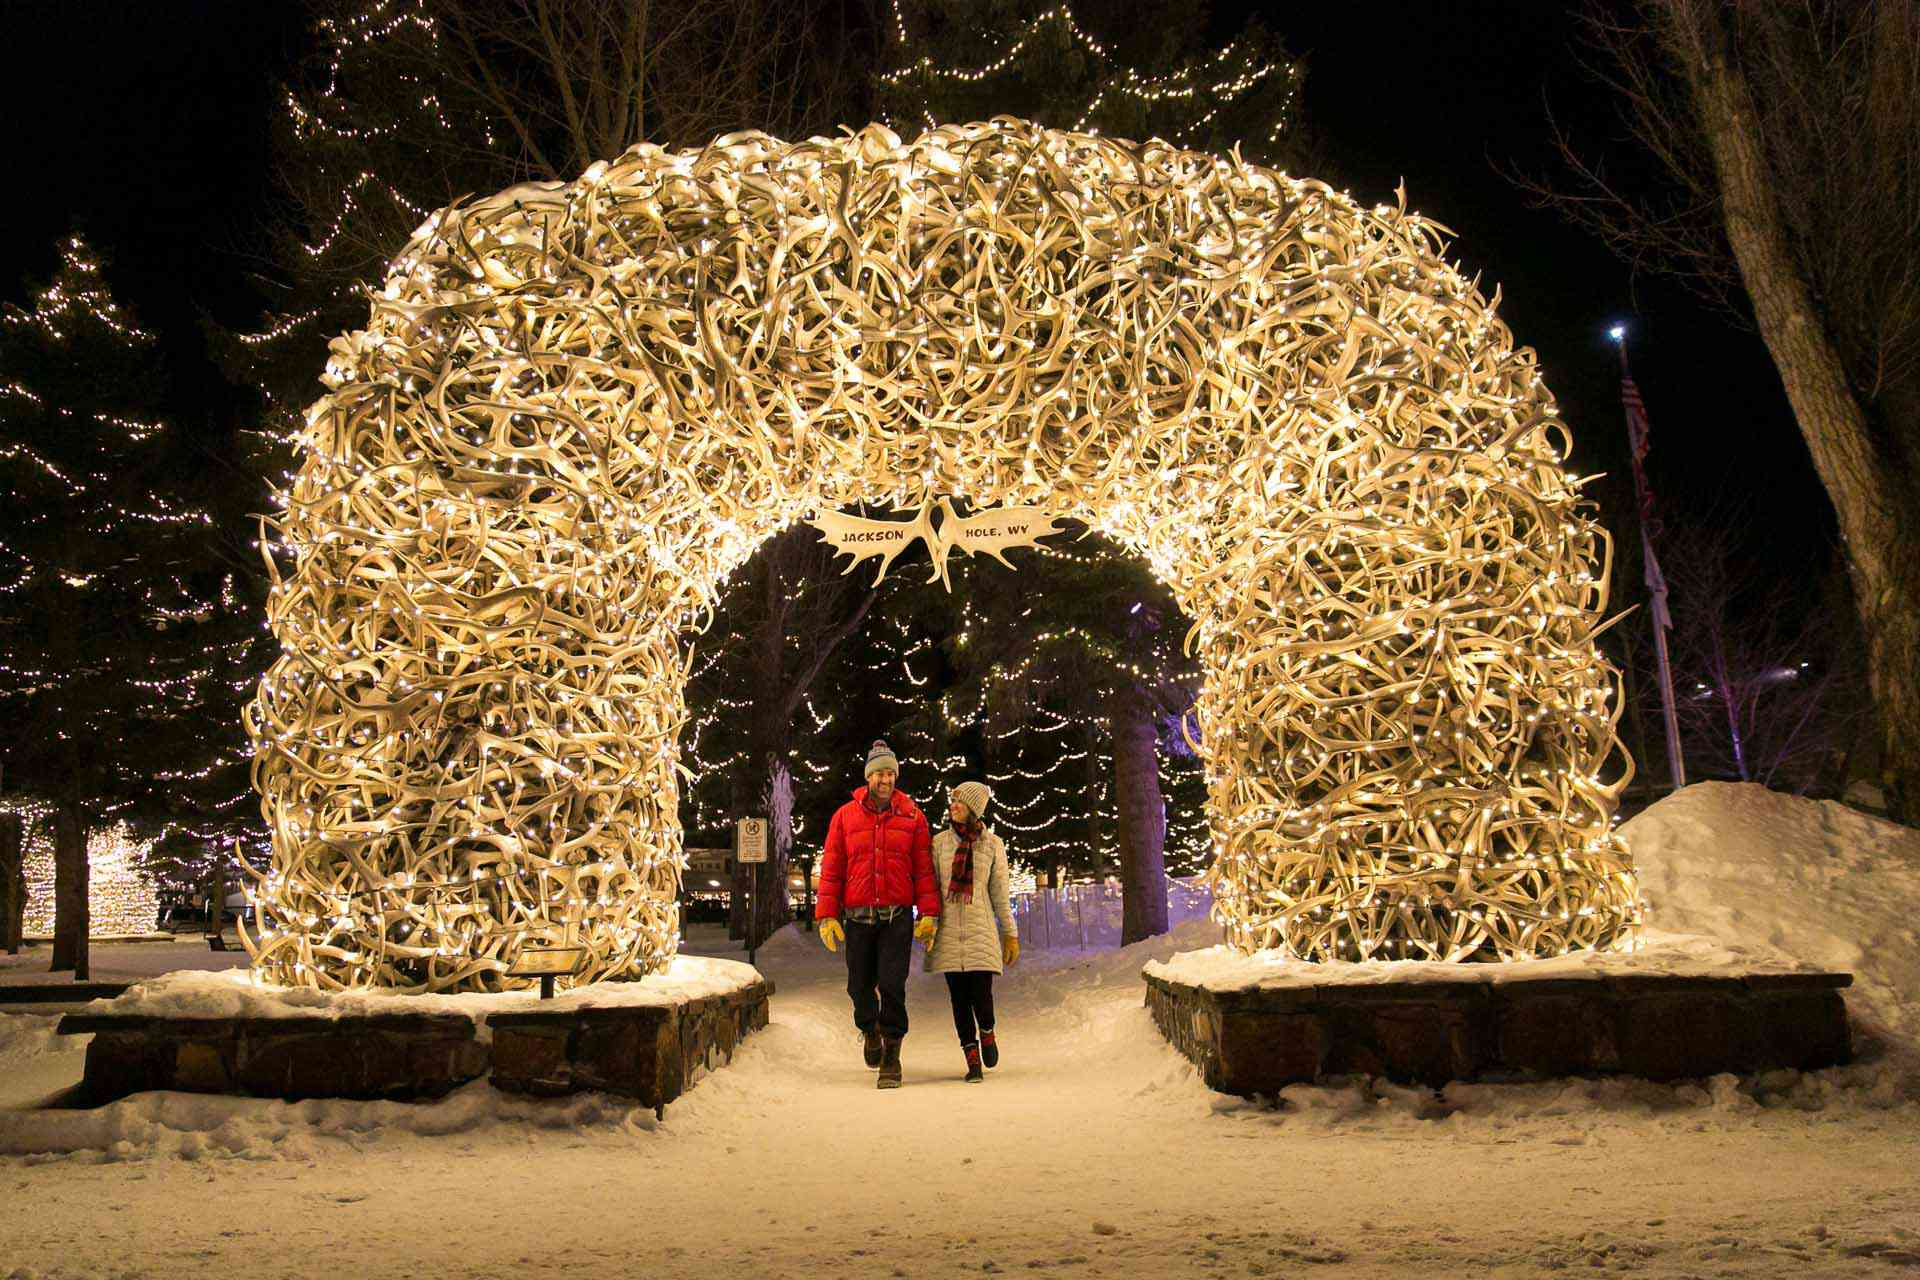 Couple walking underneath an arch made of antlers with lights around it. It is nighttime during winter